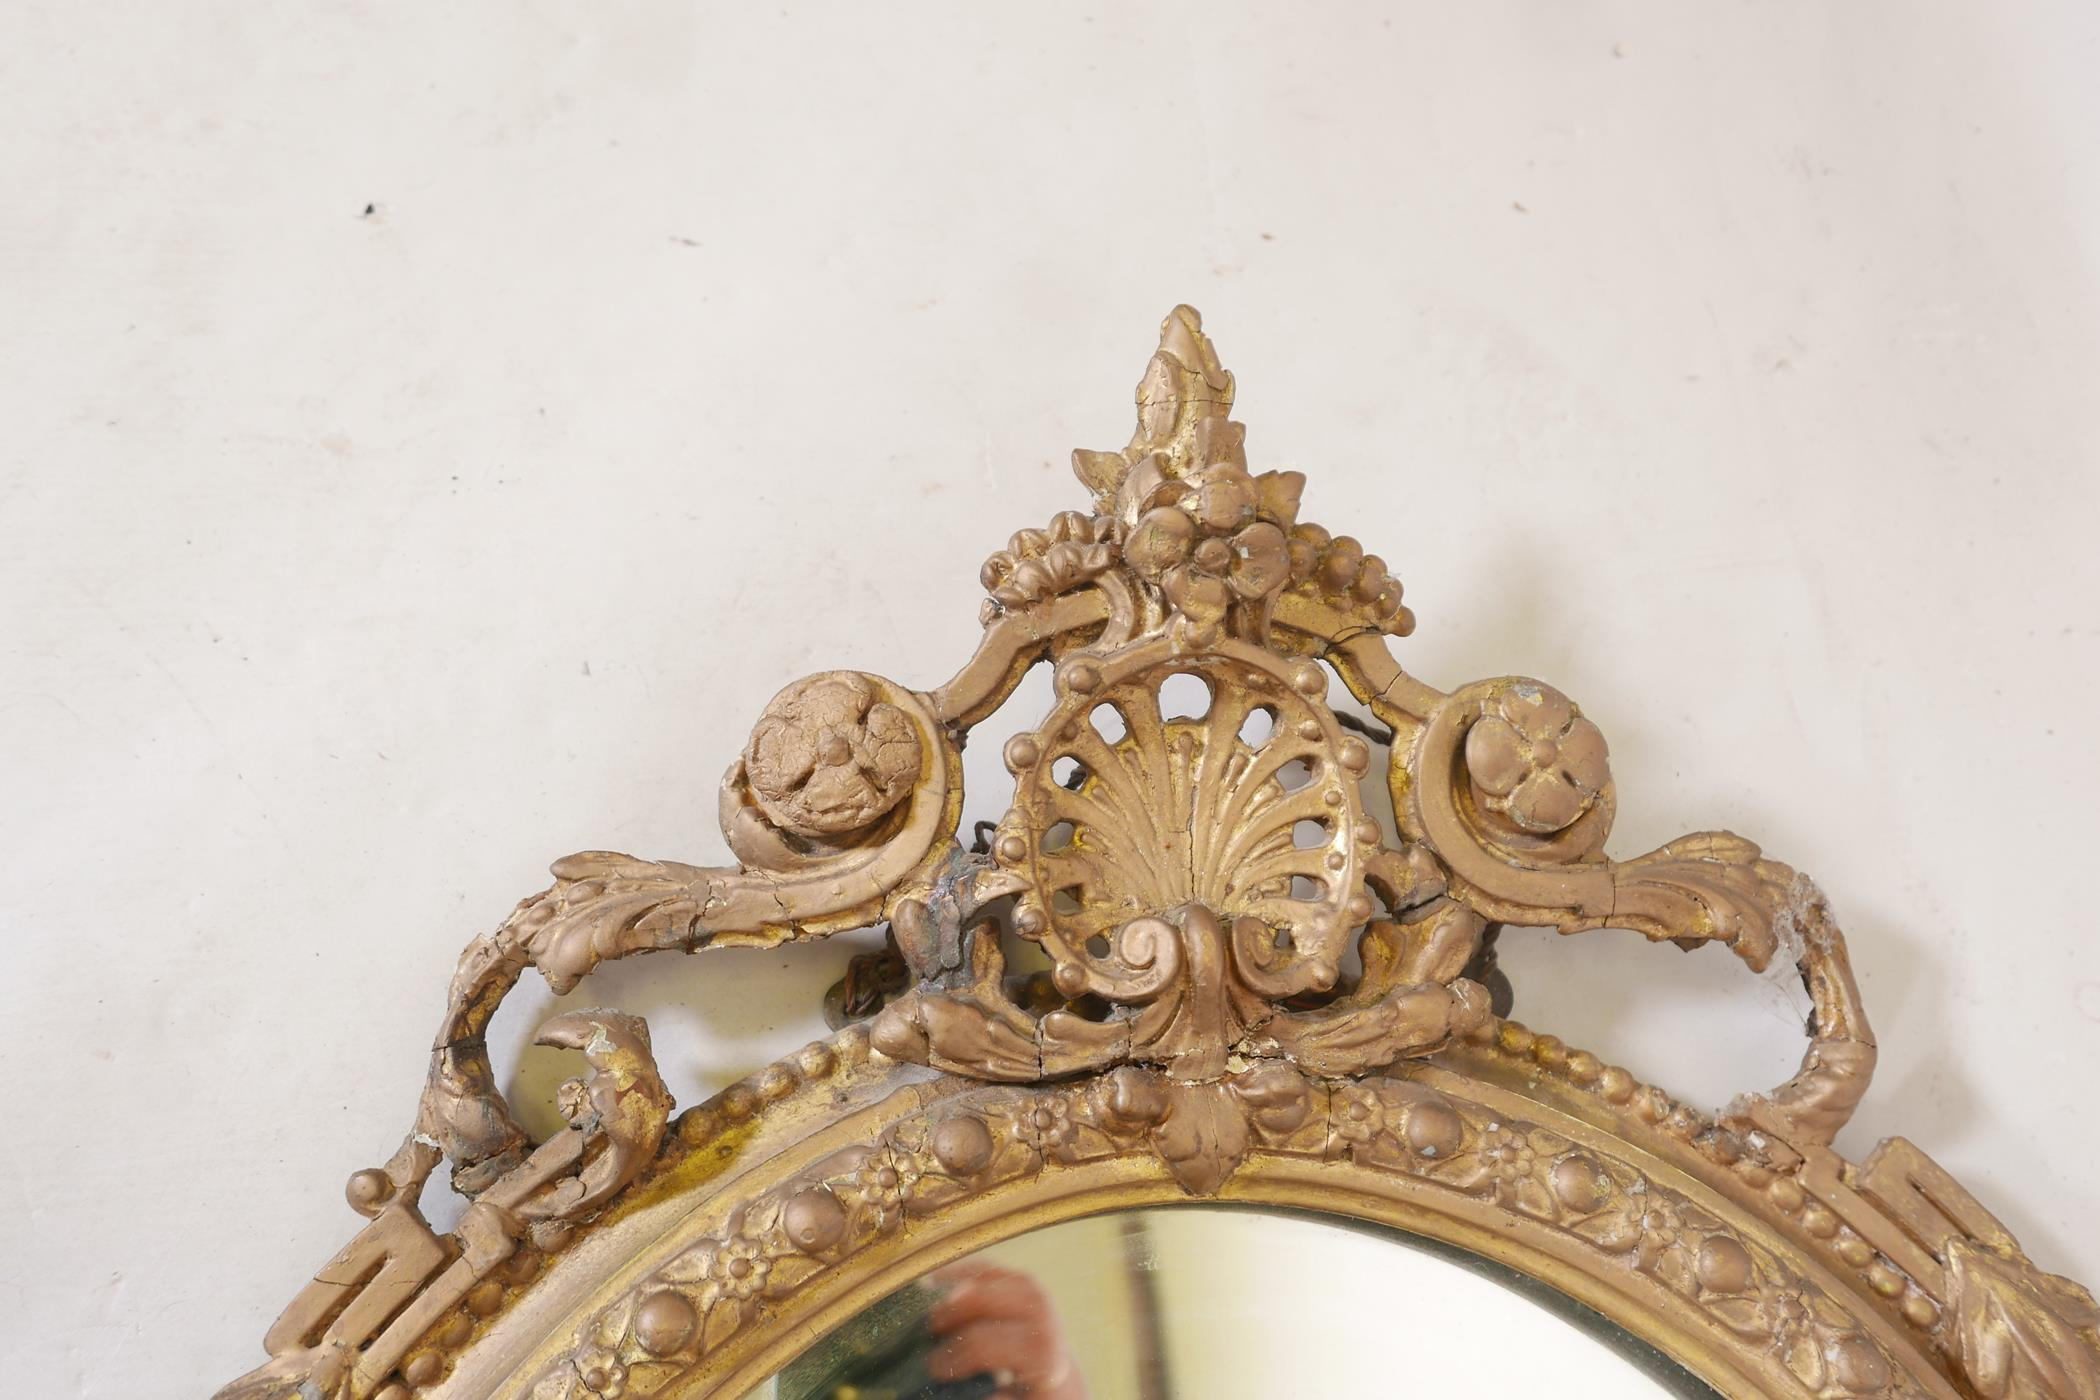 """A C19th giltwood and composition girondelle wall mirror with triple sconce, 37"""" x 23"""" - Image 4 of 5"""